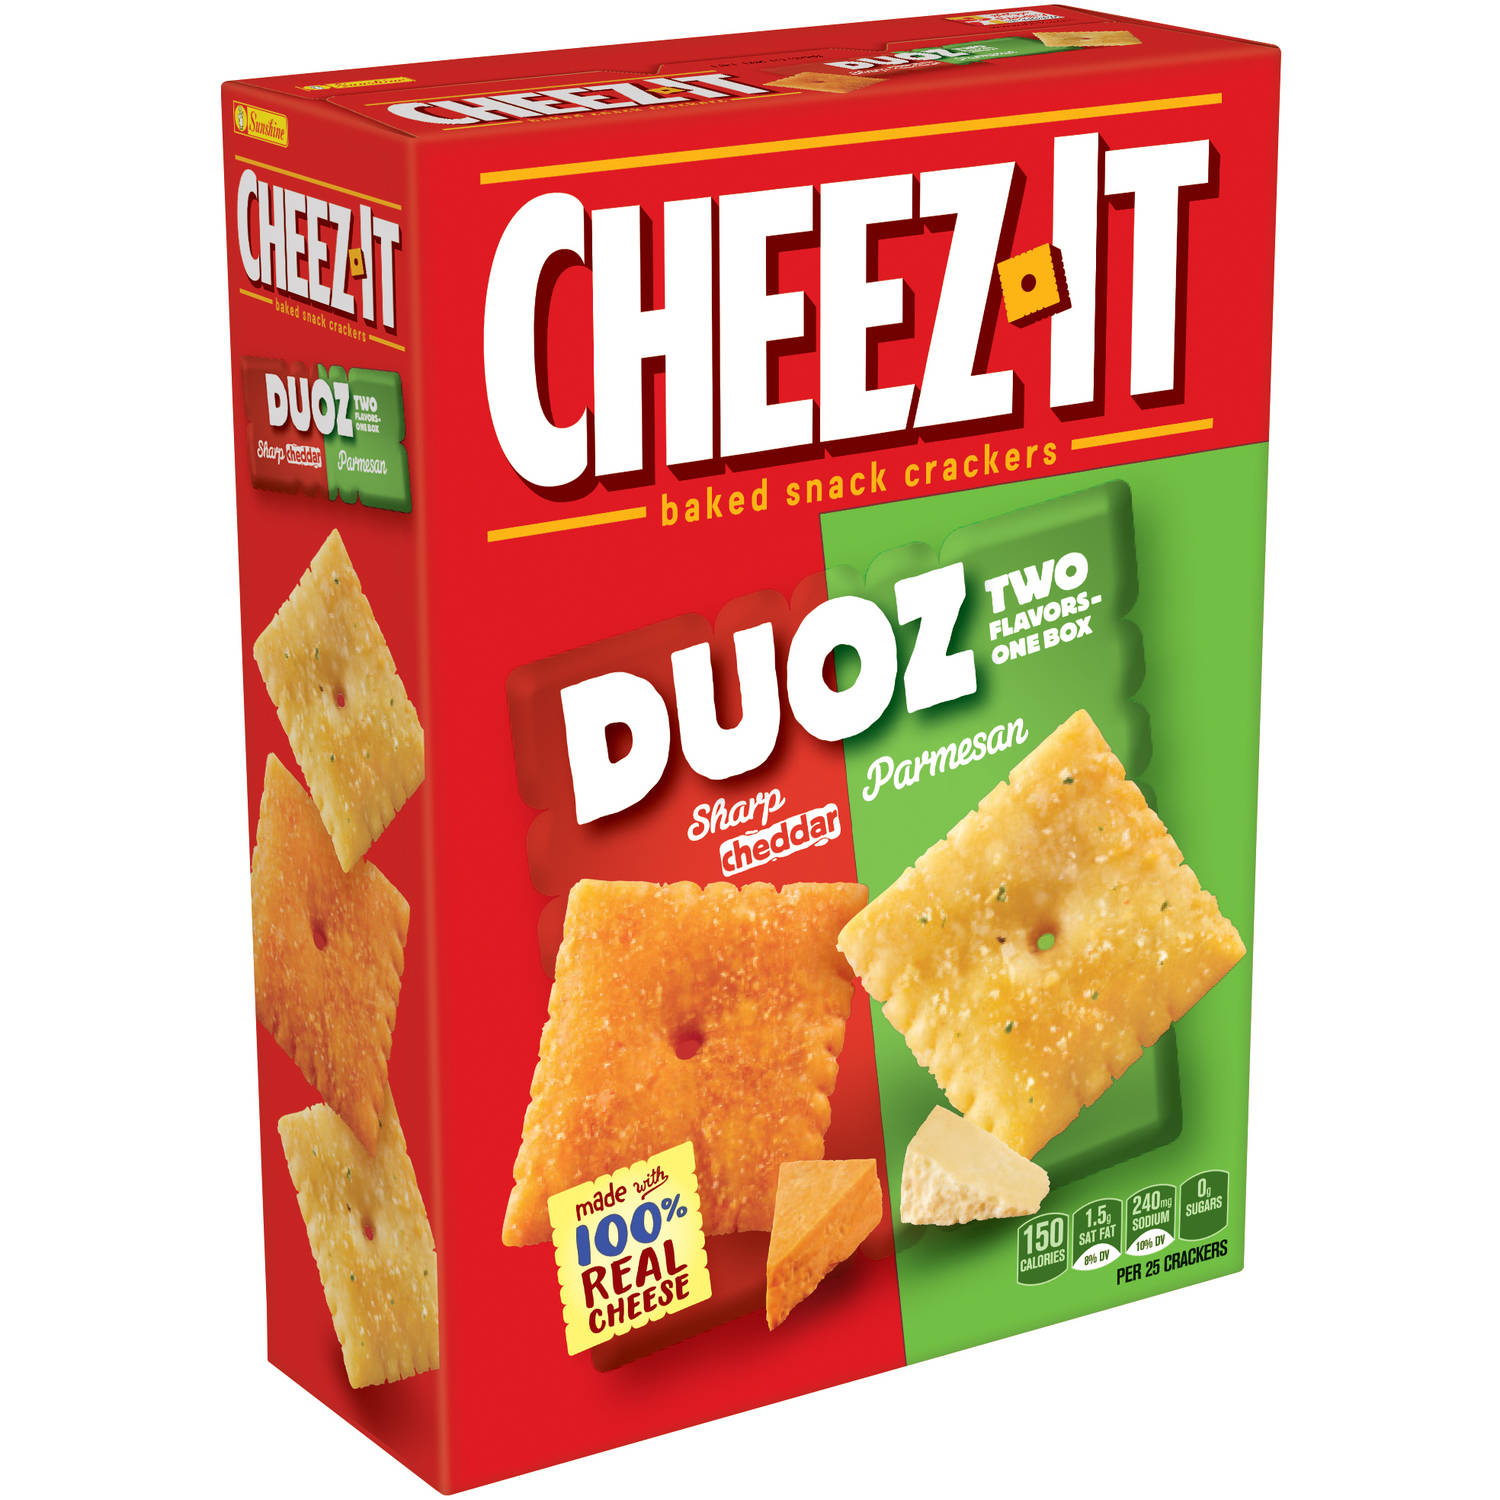 Cheez-It Duoz Sharp Cheddar Parmesan Baked Snack Crackers, 12.4 oz by Kellogg Company